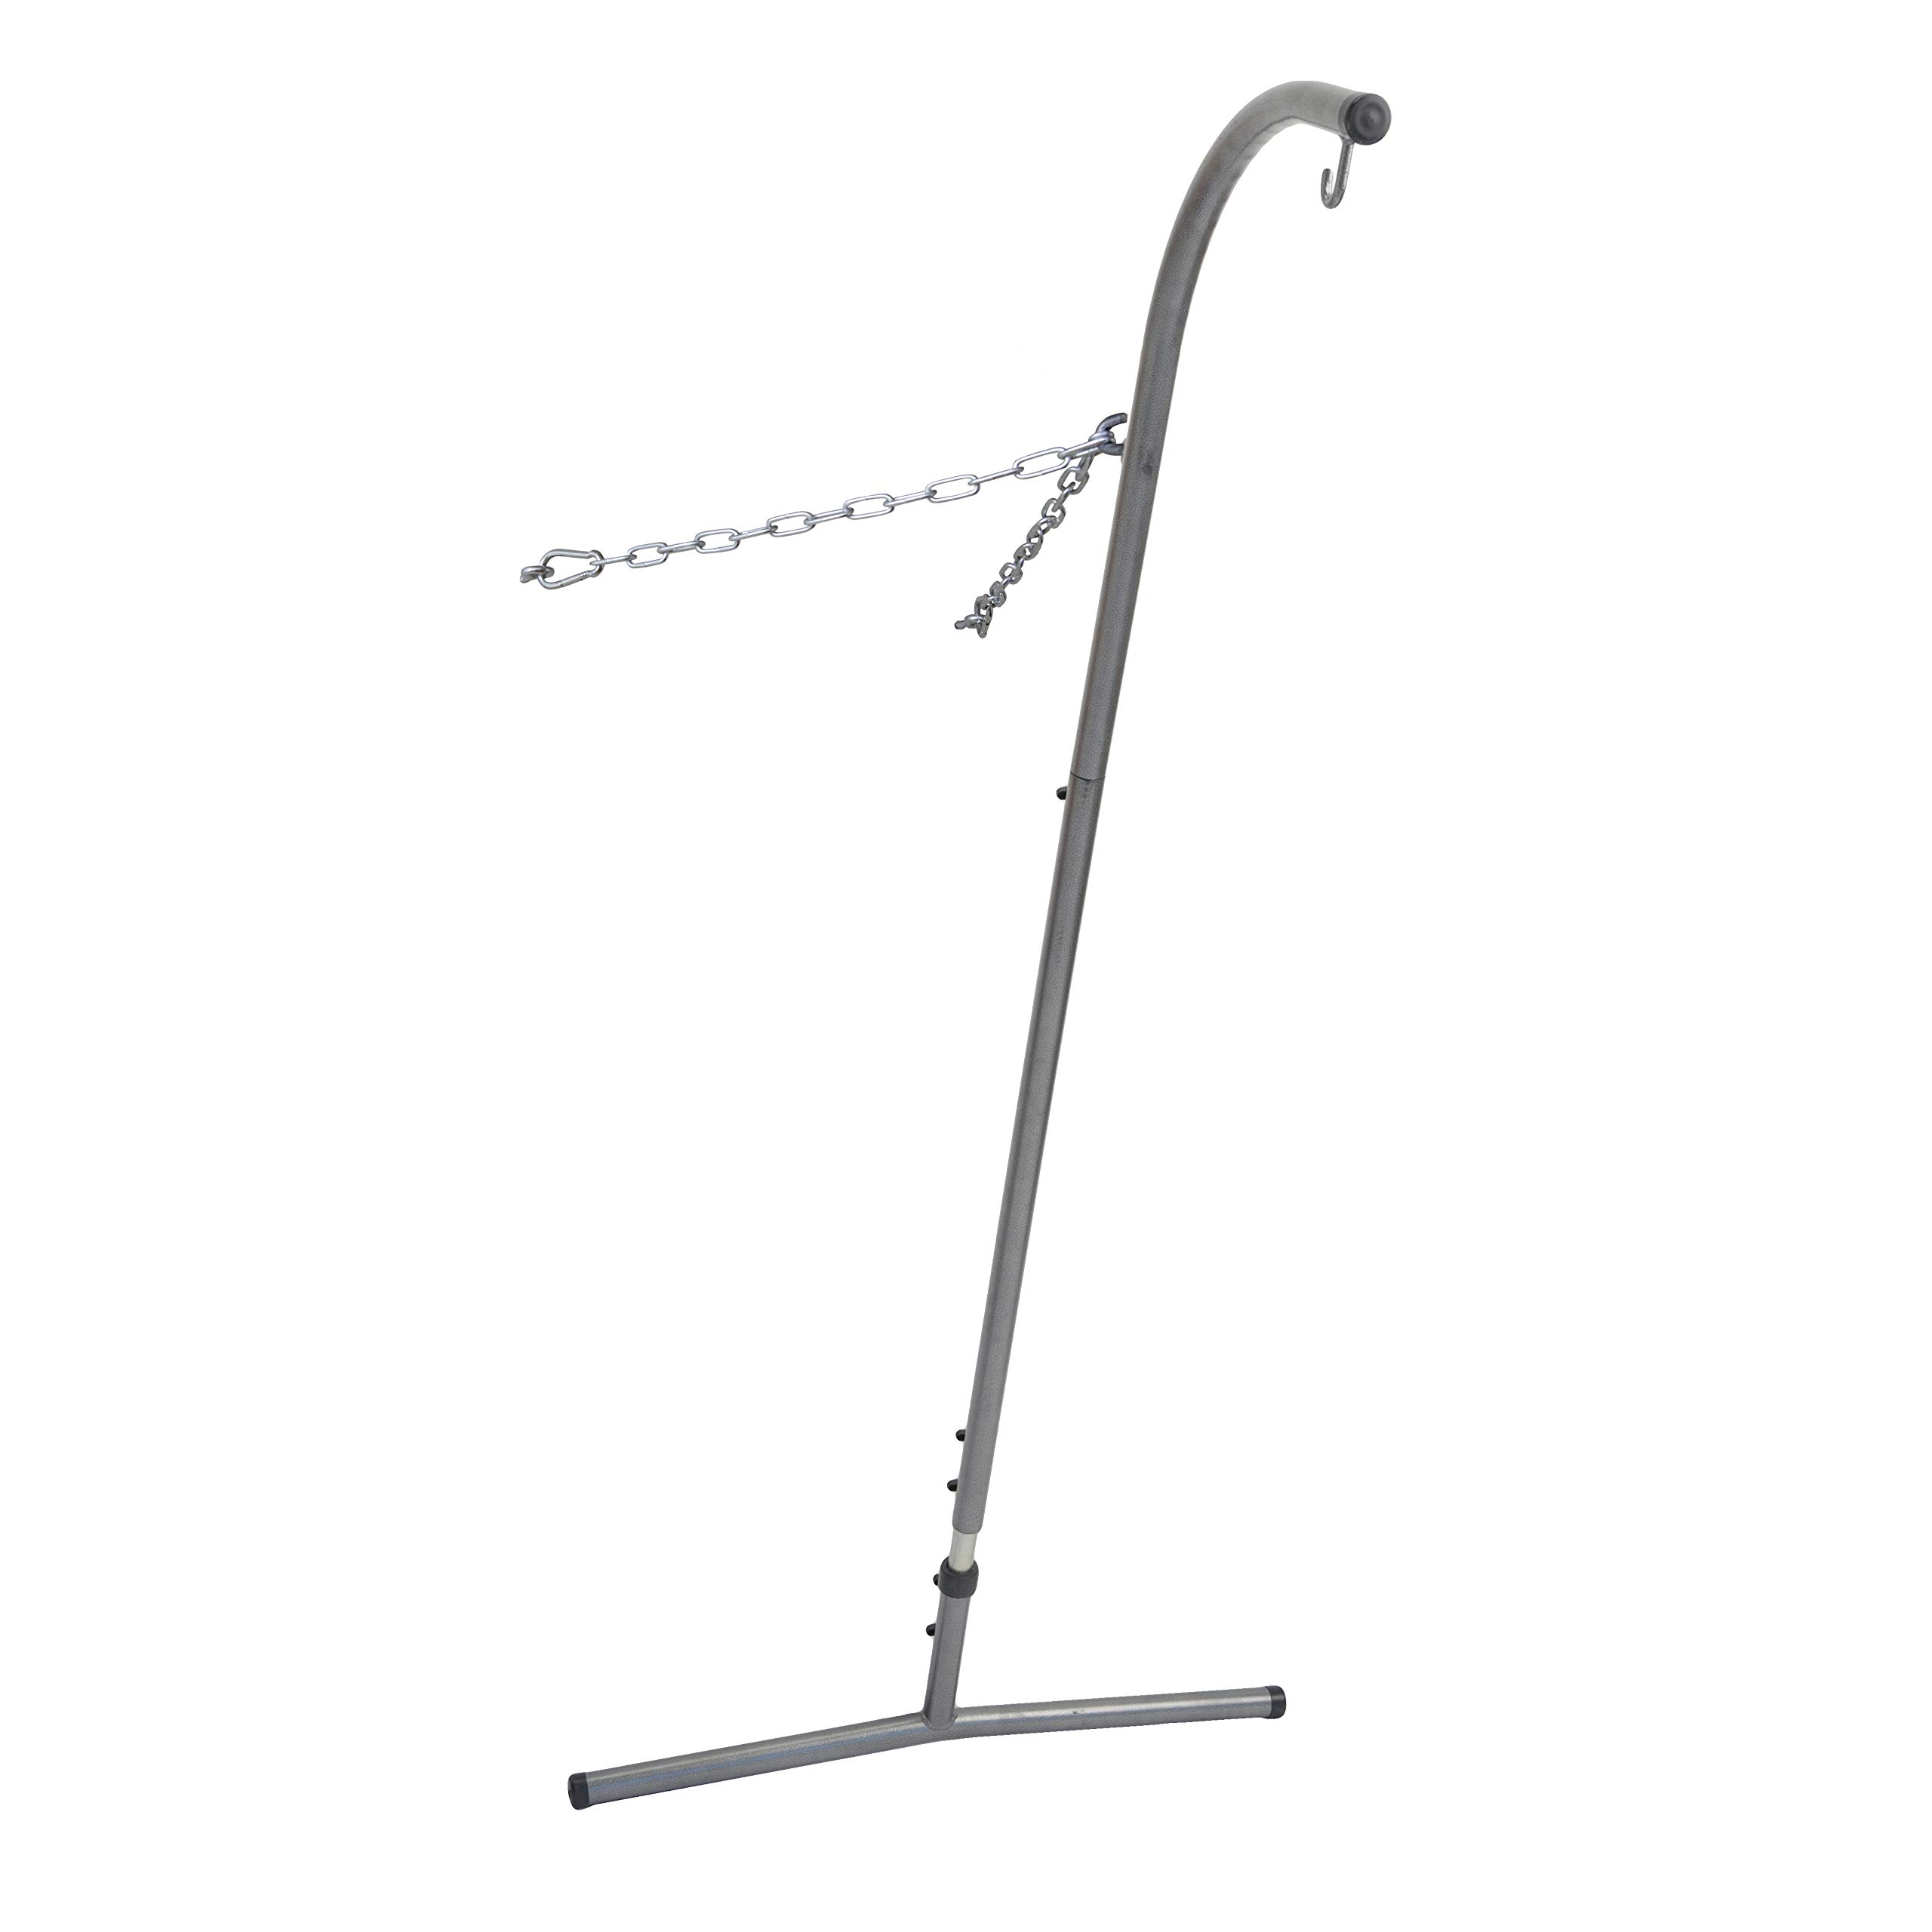 BYER OF MAINE Palmera Hanging/Hammock Chair Stand, Steel Construction, Space Saver, Indoors and Outdoors, Adjustable Height, Holds Up to 240lbs